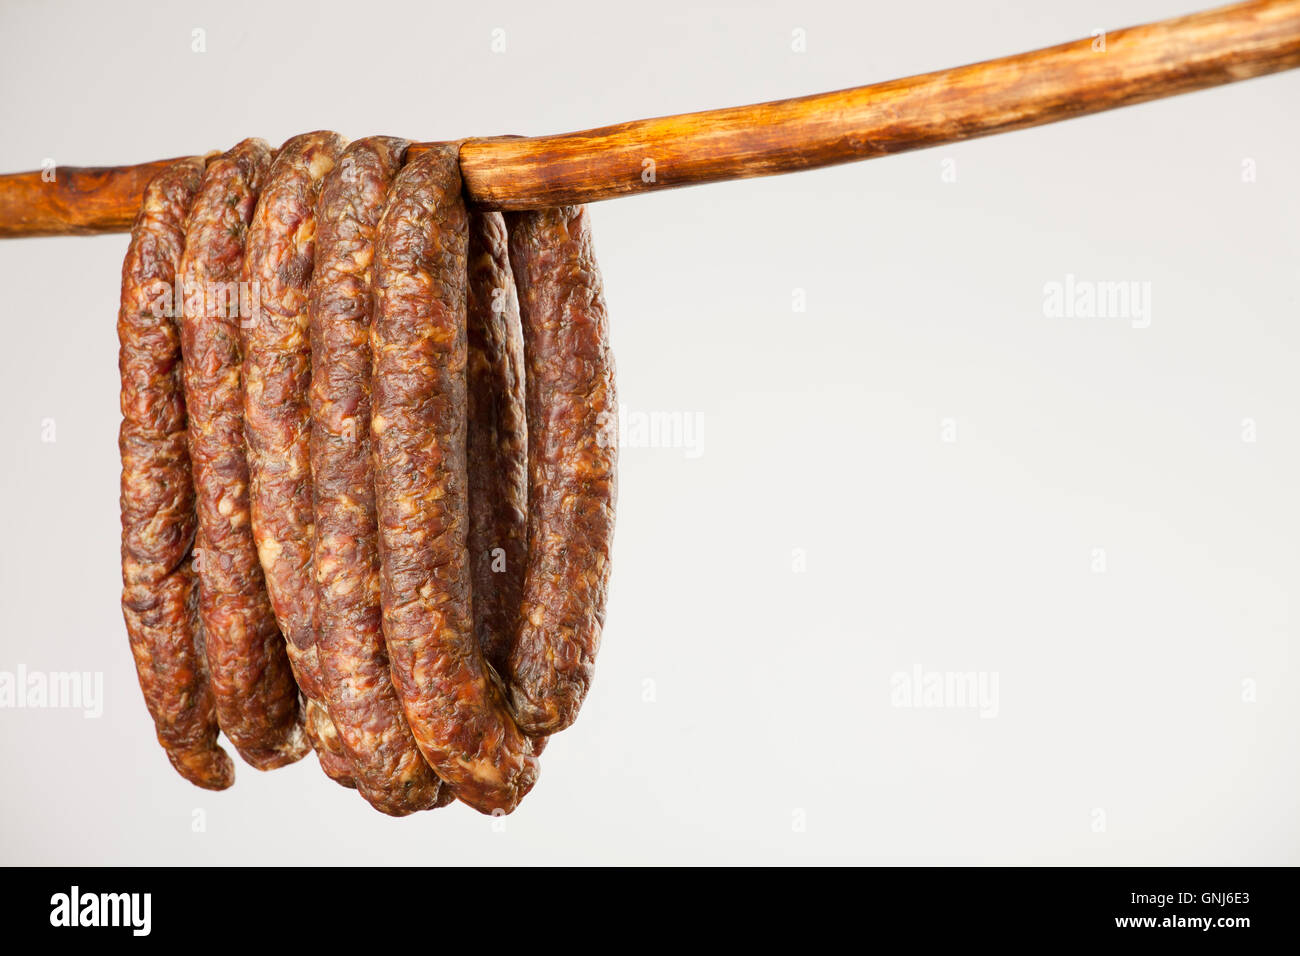 hanging smoked sausage on a stick on white background - Stock Image